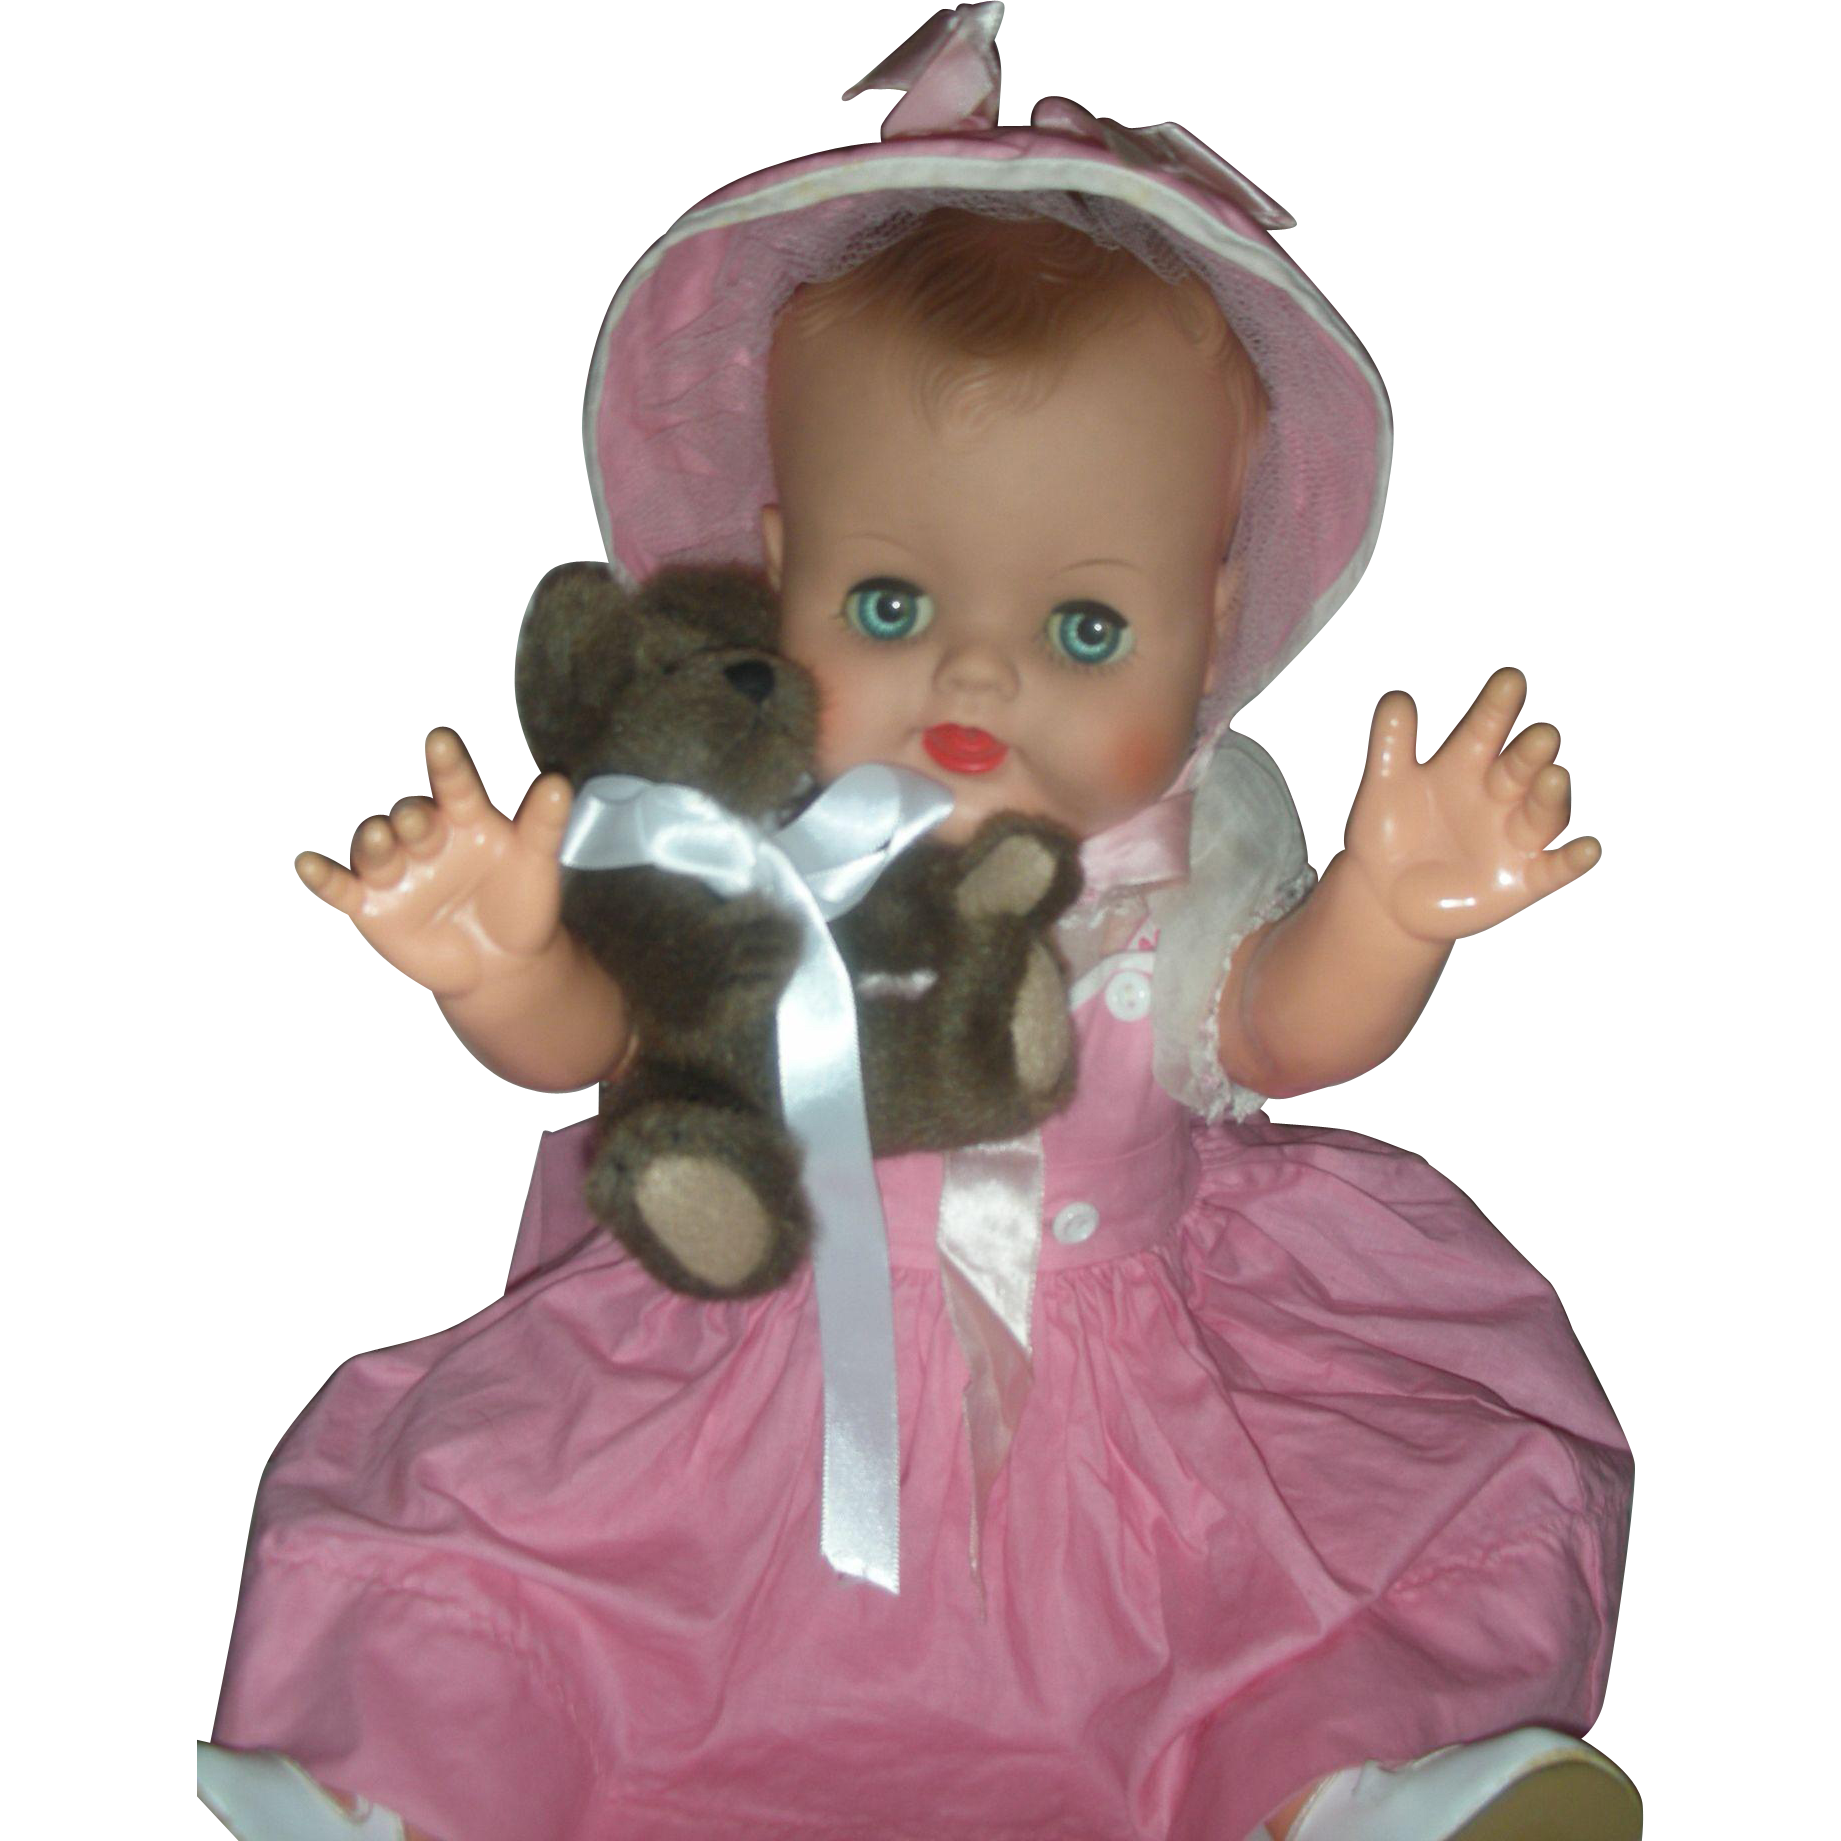 Vintage 1950s 20 Inch Drink and Wet Baby Doll Molded Hair Original Dress Excellent Condition Playpal Size